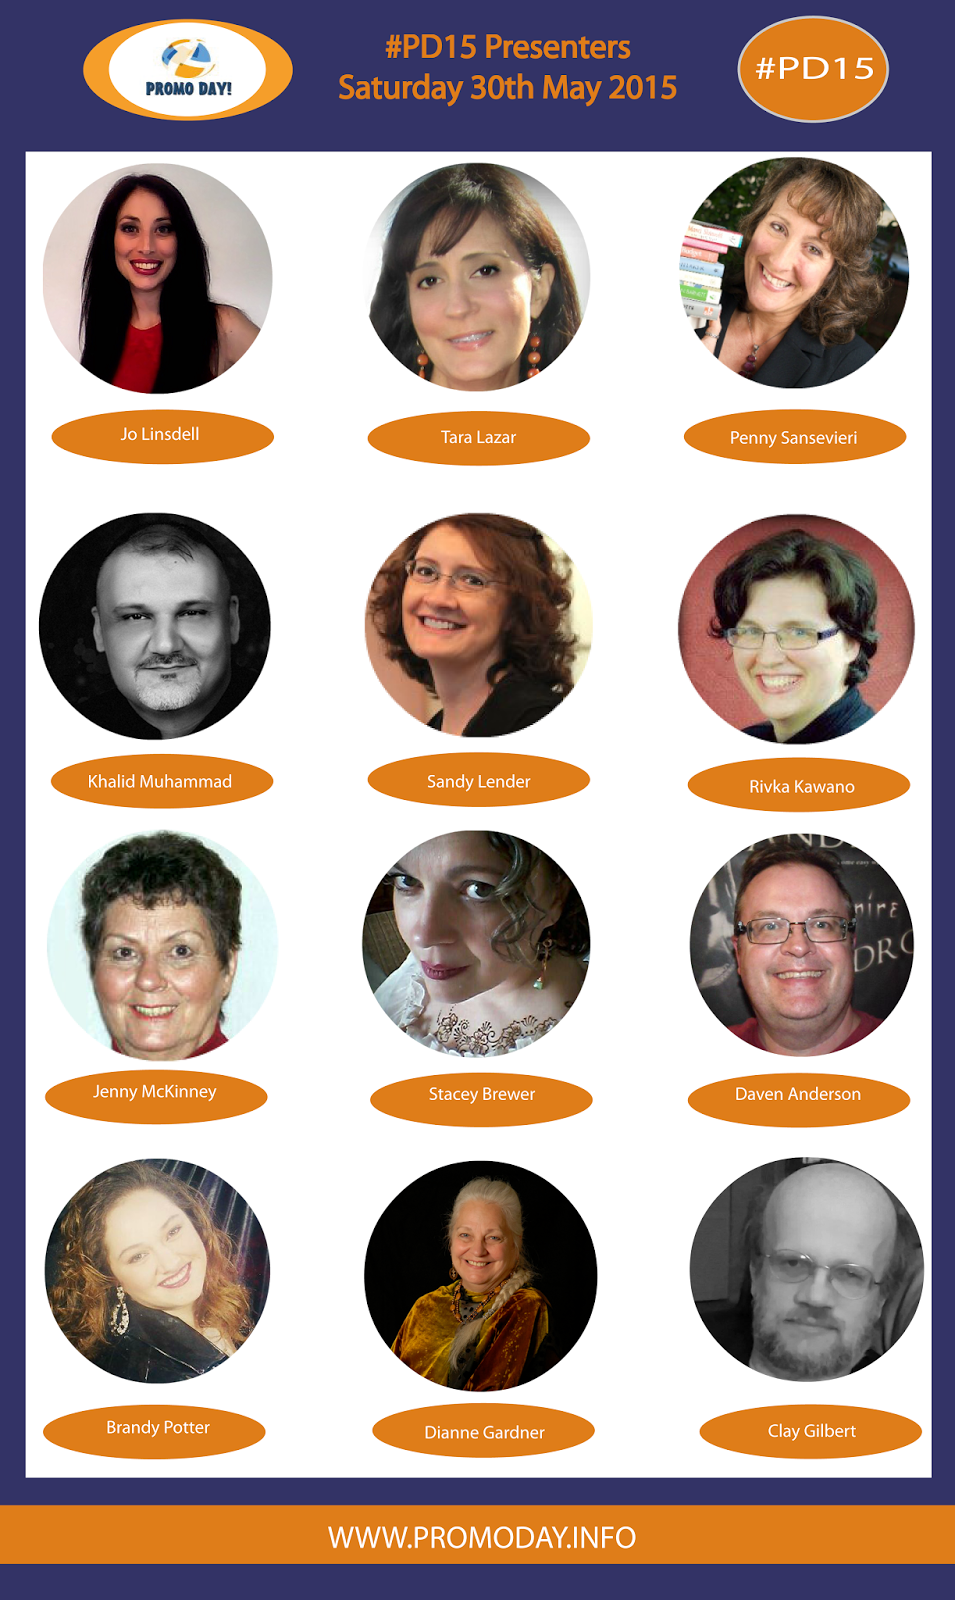 Check out the great line up of presenters who will be offering free webinars at this years Promo Day event on Saturday 30th May.Register now at www.PromoDay.info